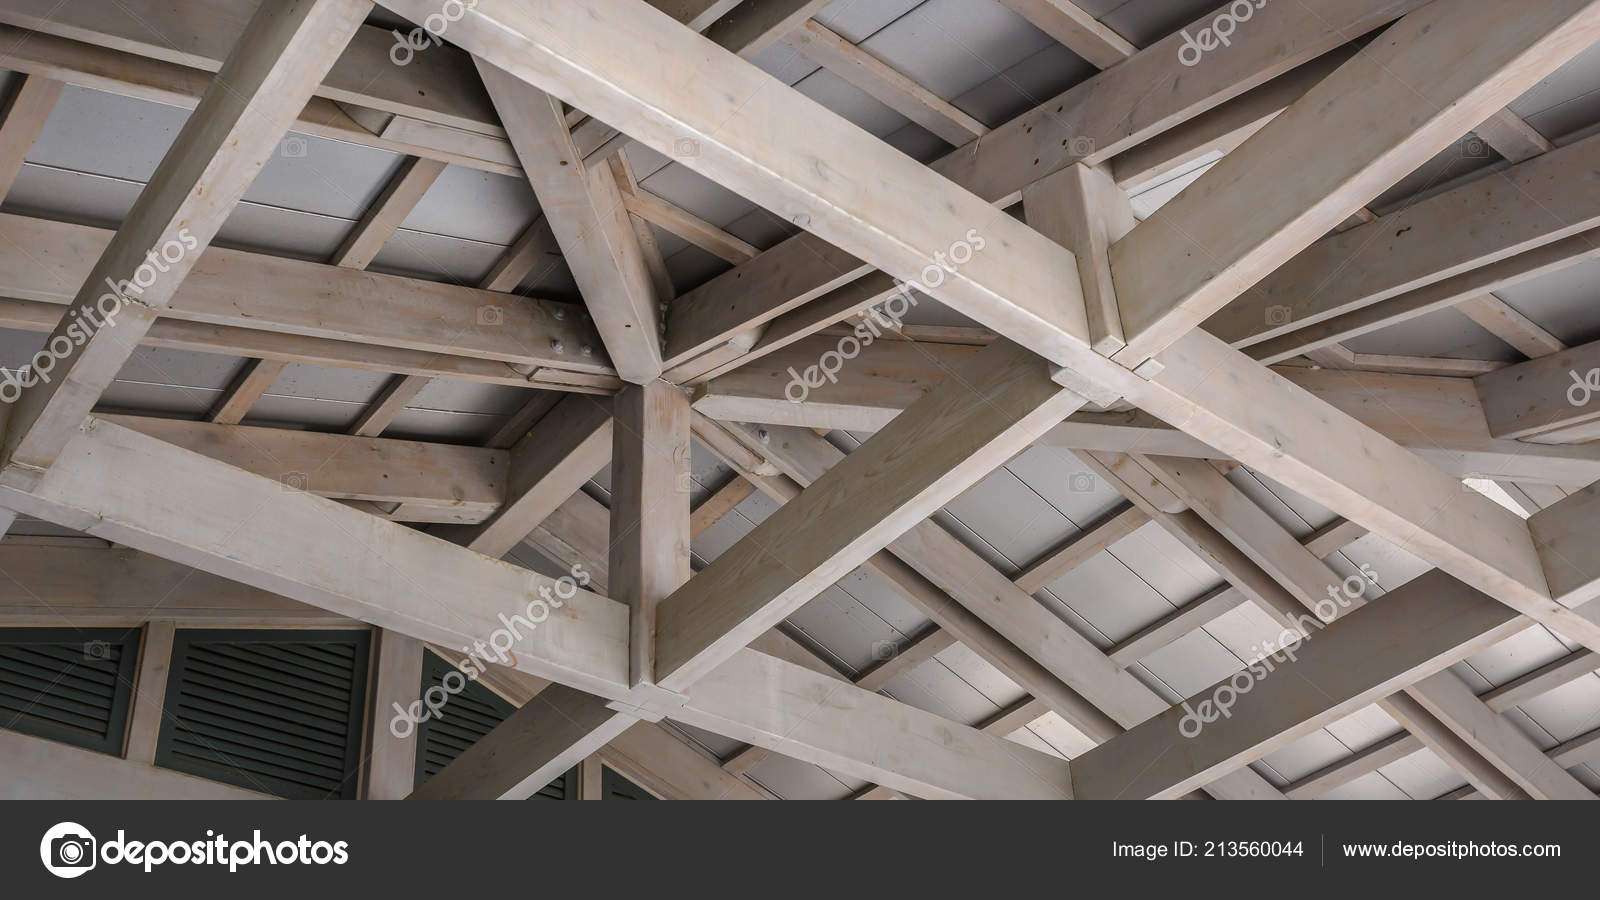 white wood ceiling framework against a white roof stock photo - White Wood Ceiling